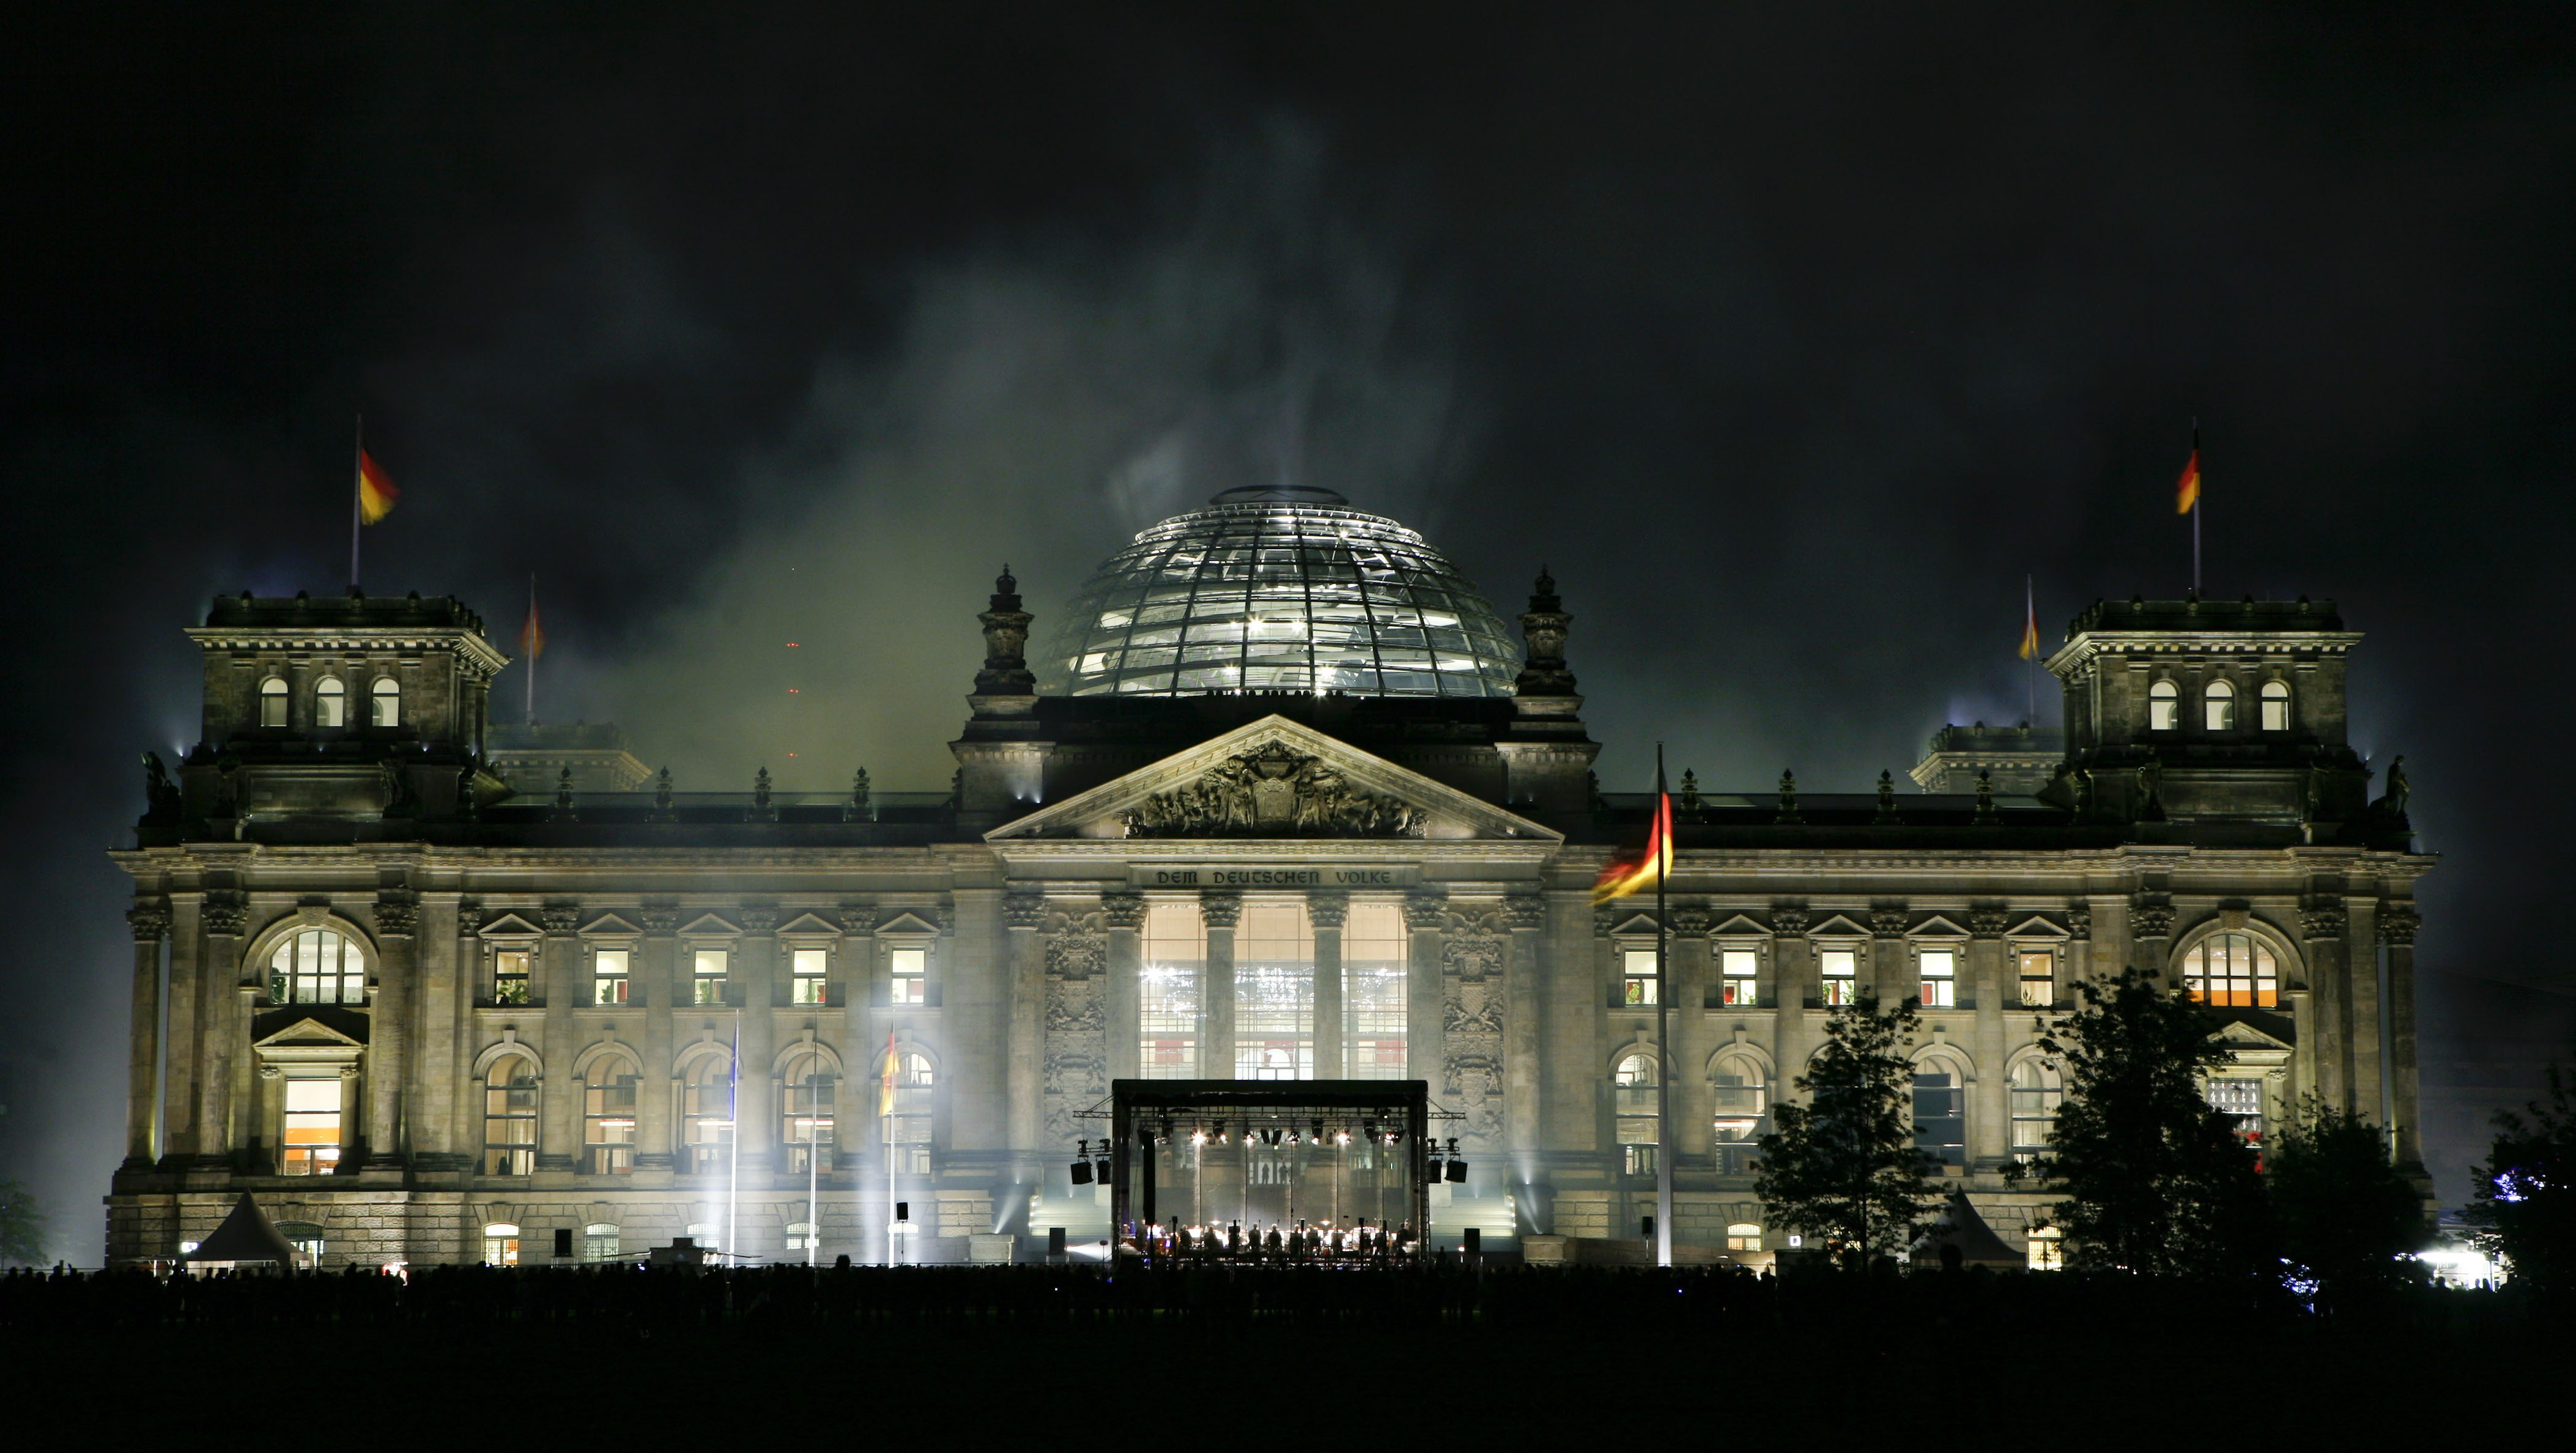 Smoke seen over the Reichstag in Berlin after a fire works to present the new illumination of the building on the eve of Germany's President election on Friday, May 22, 2009.